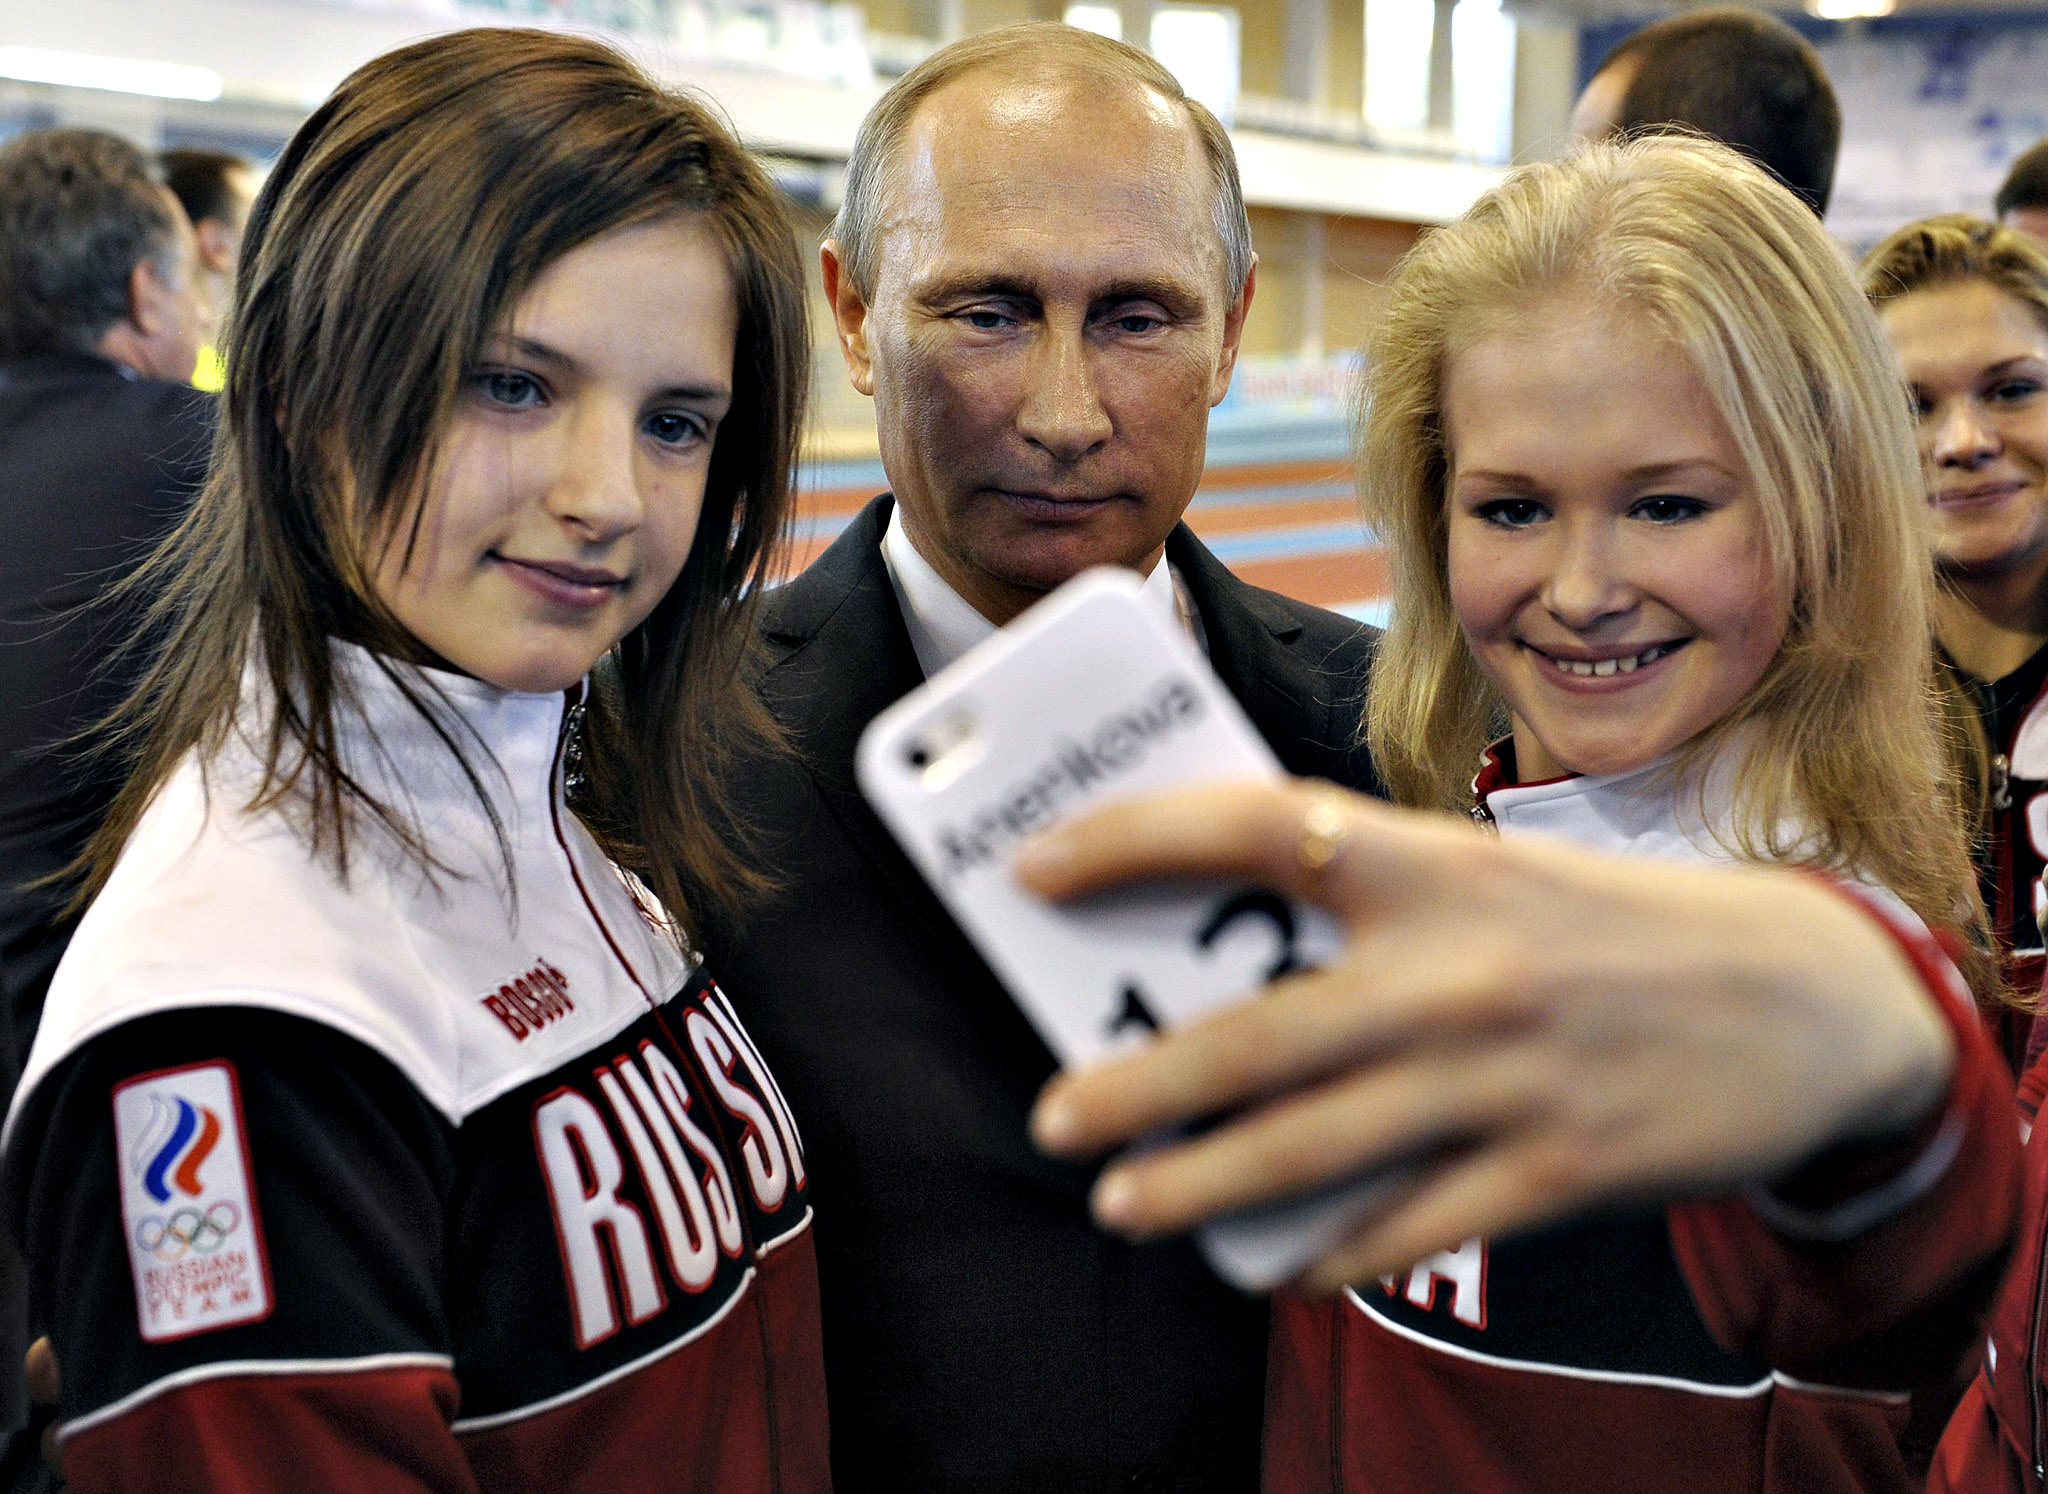 Russian President Putin poses for a picture with youths who took part in the Nanjing 2014 Youth Olympic Games, as he visits a local Olympic youth sports school in Cheboksary...Russian President Vladimir Putin (C) poses for a picture with youths who took part in the Nanjing 2014 Youth Olympic Games, as he visits a local Olympic youth sports school in Cheboksary, October 9, 2014.